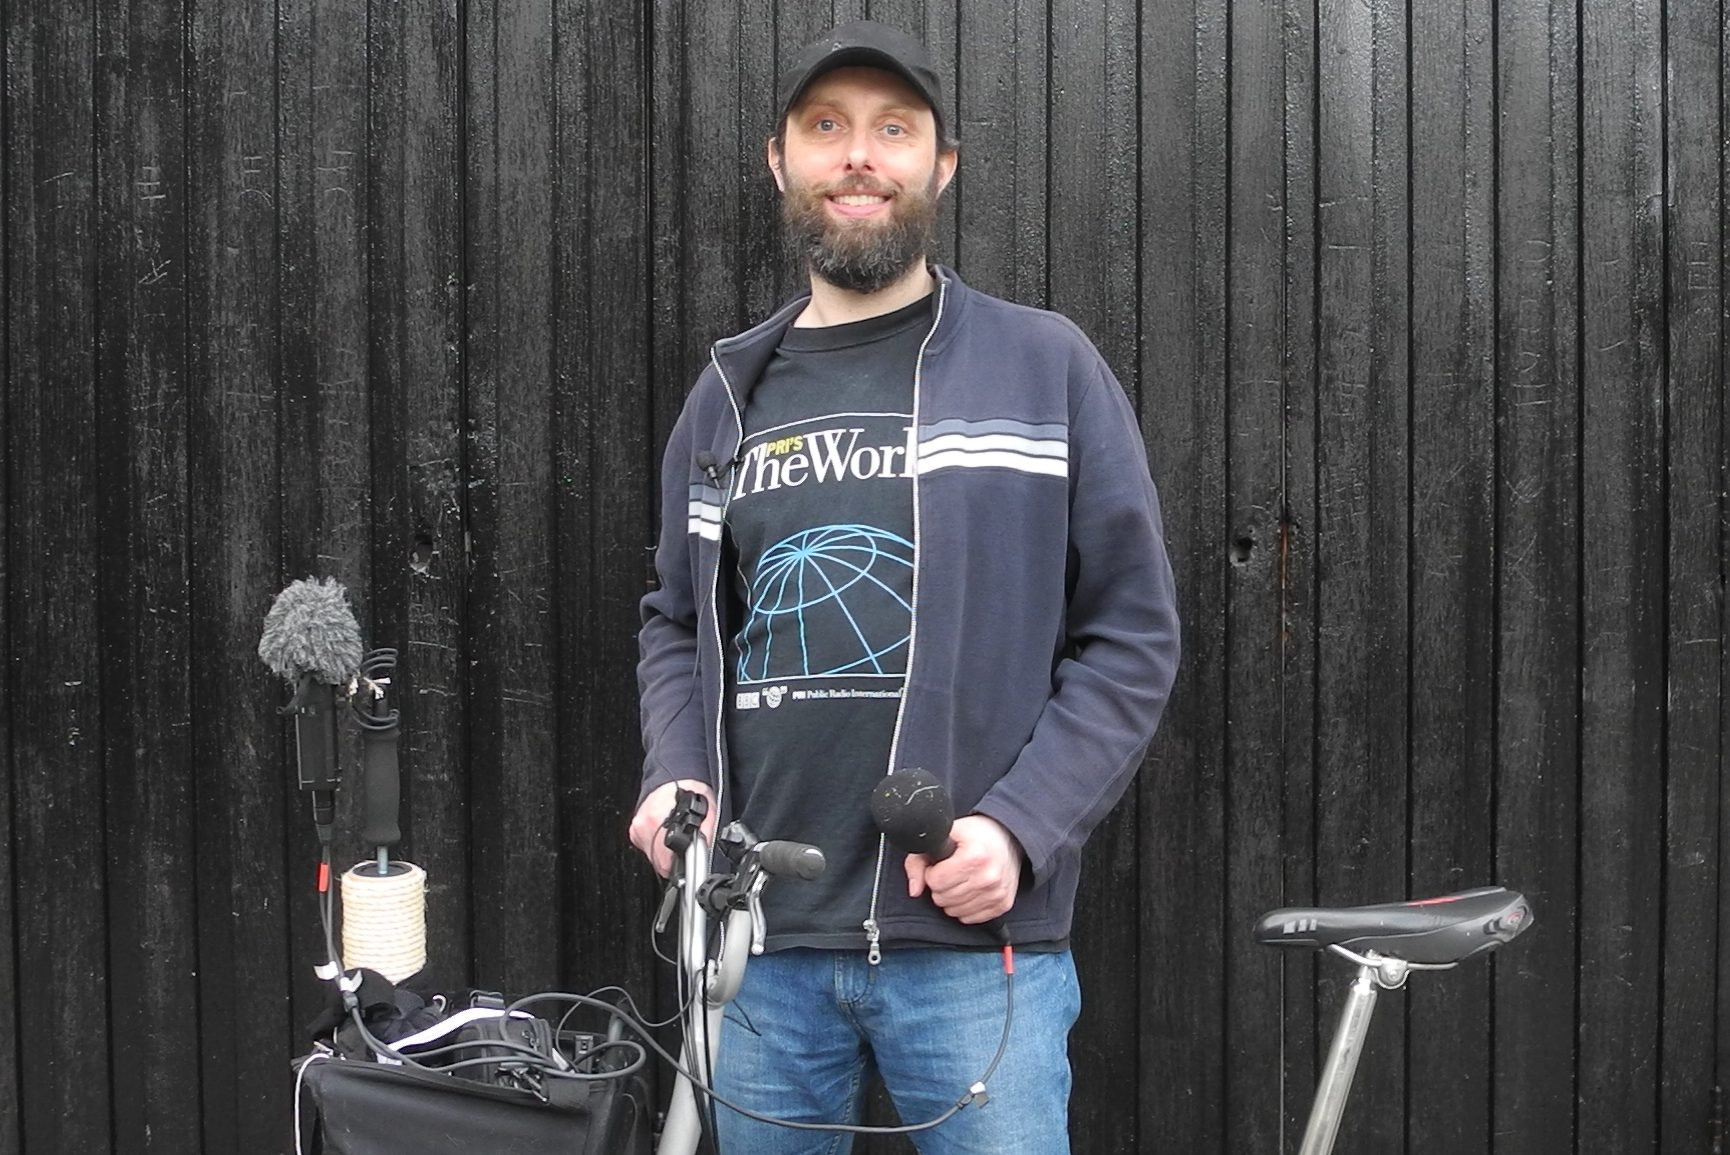 Man with cap, bike, and microphones